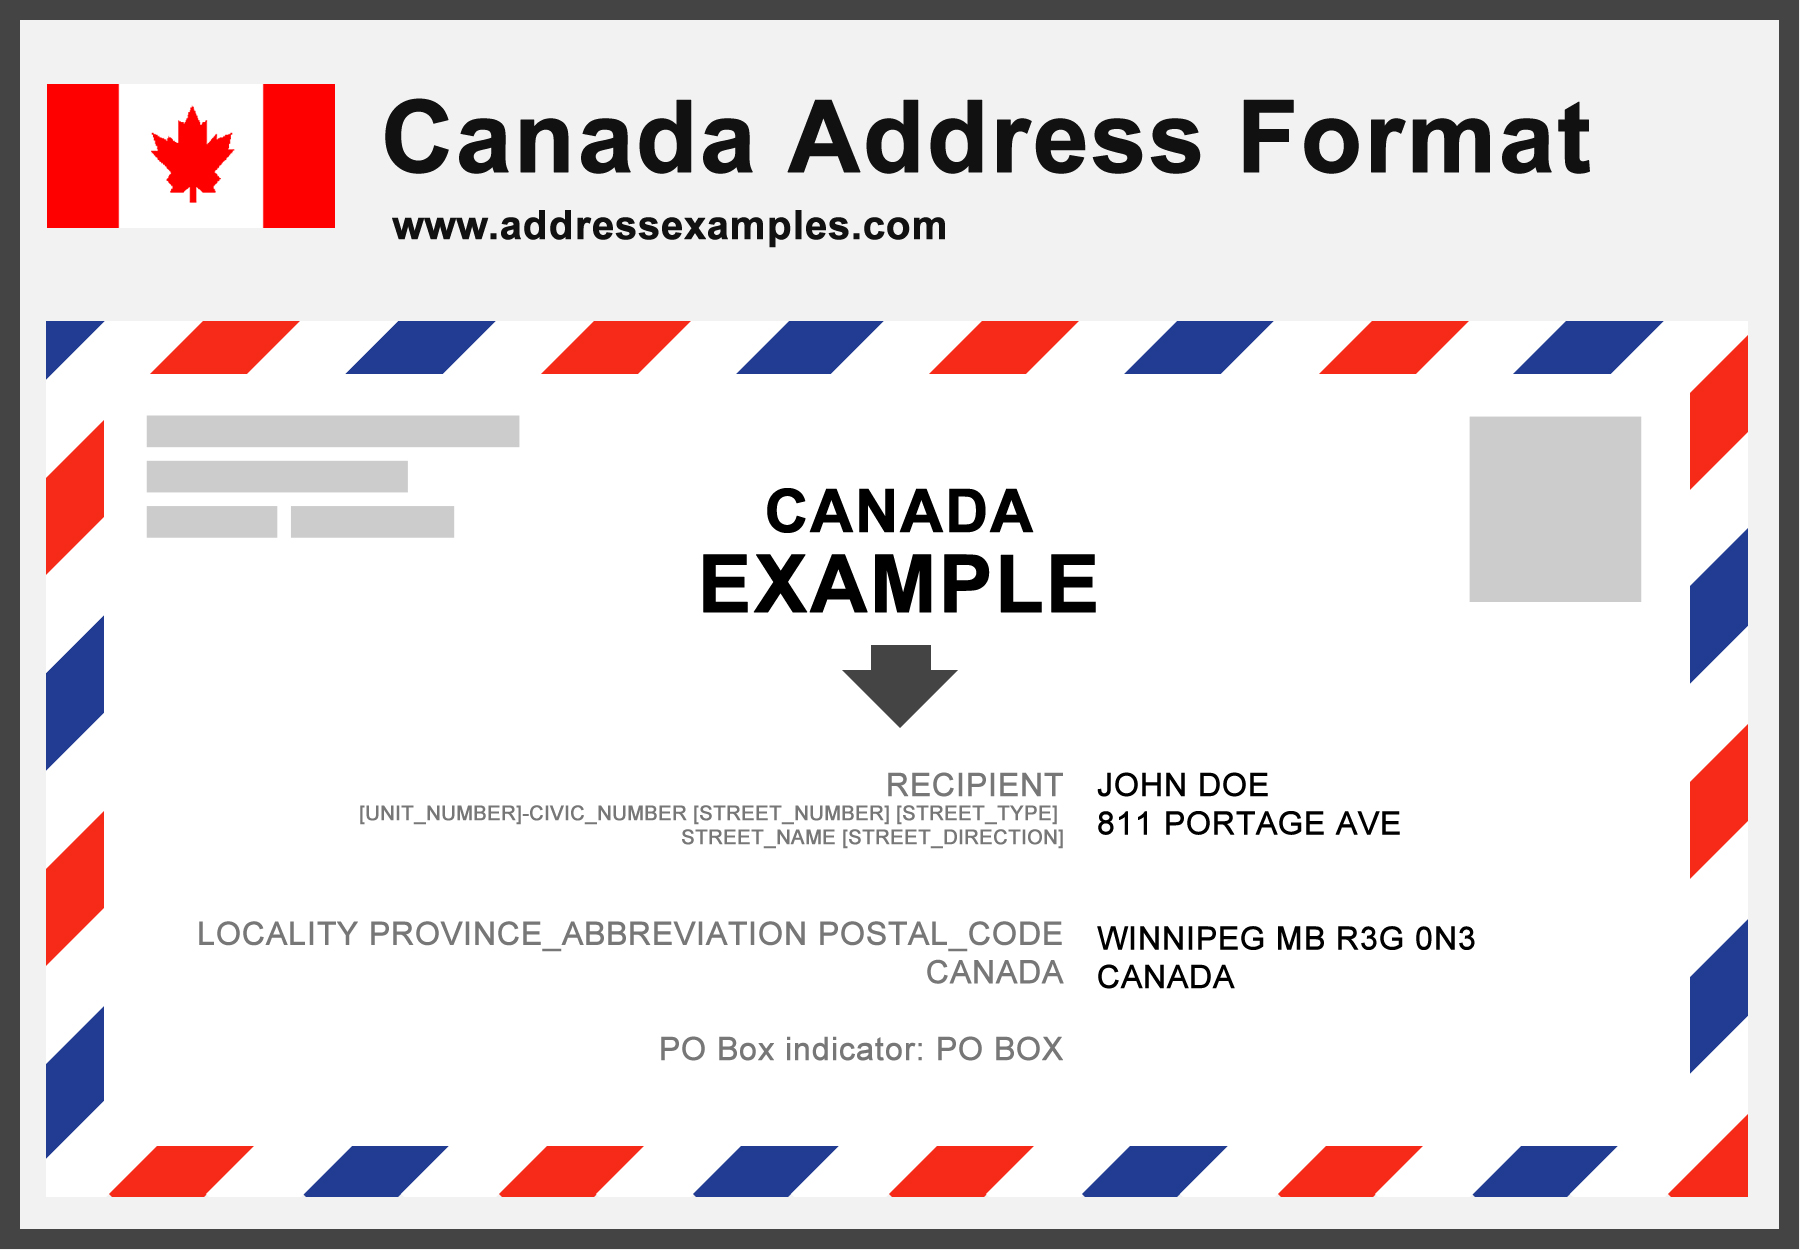 Canada Address Format